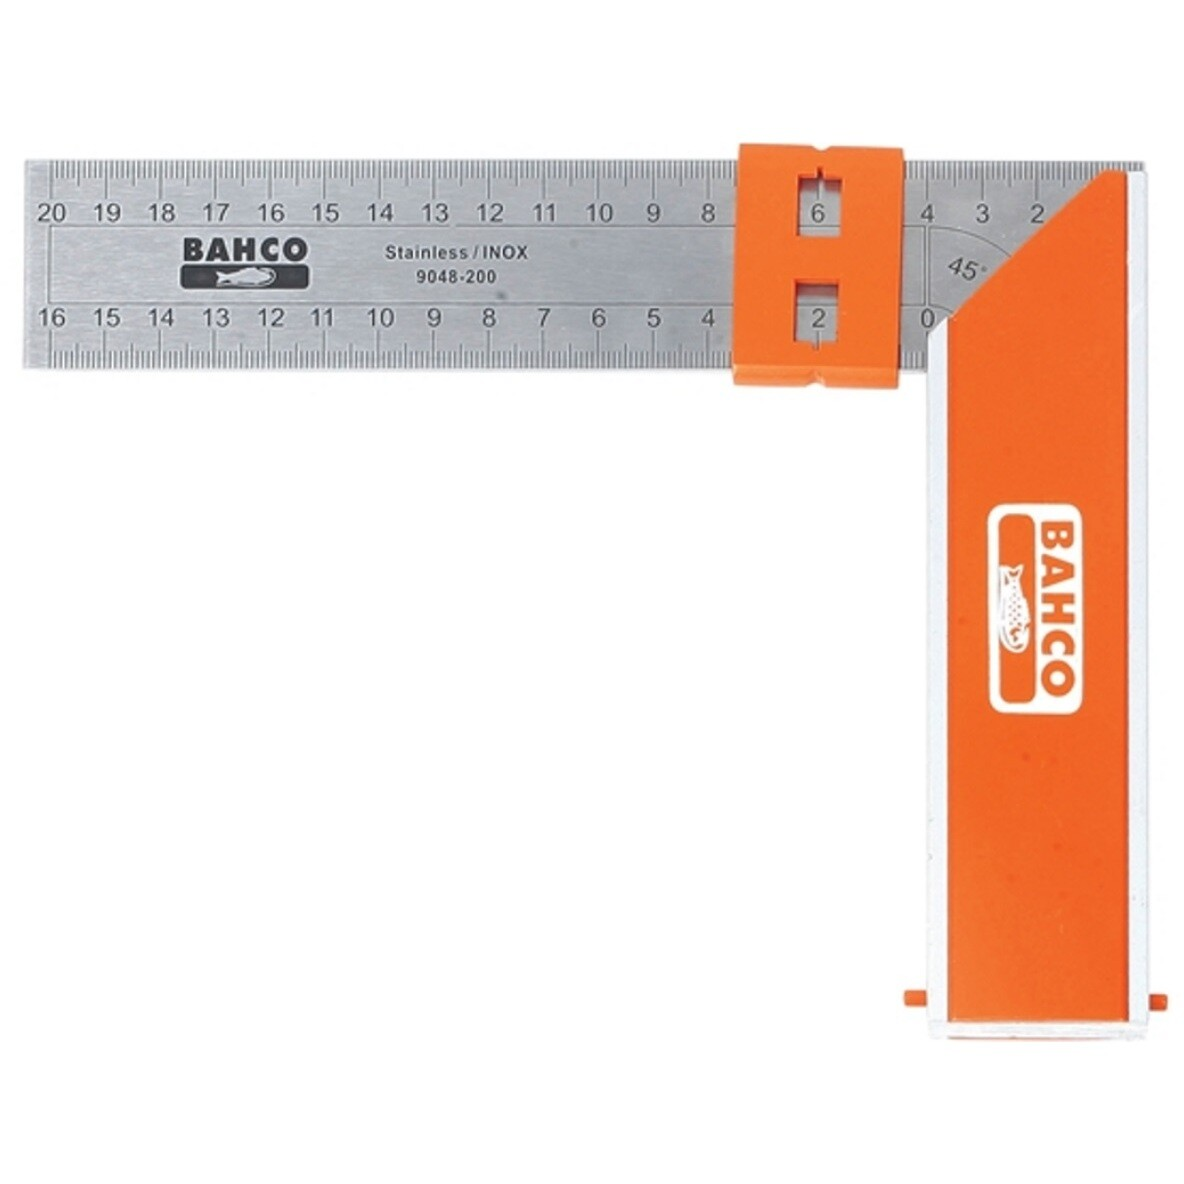 905d54befb7 Bahco 9048-200 Aluminium Block   Steel Try Square 200mm BAH9048200 from Lawson  HIS